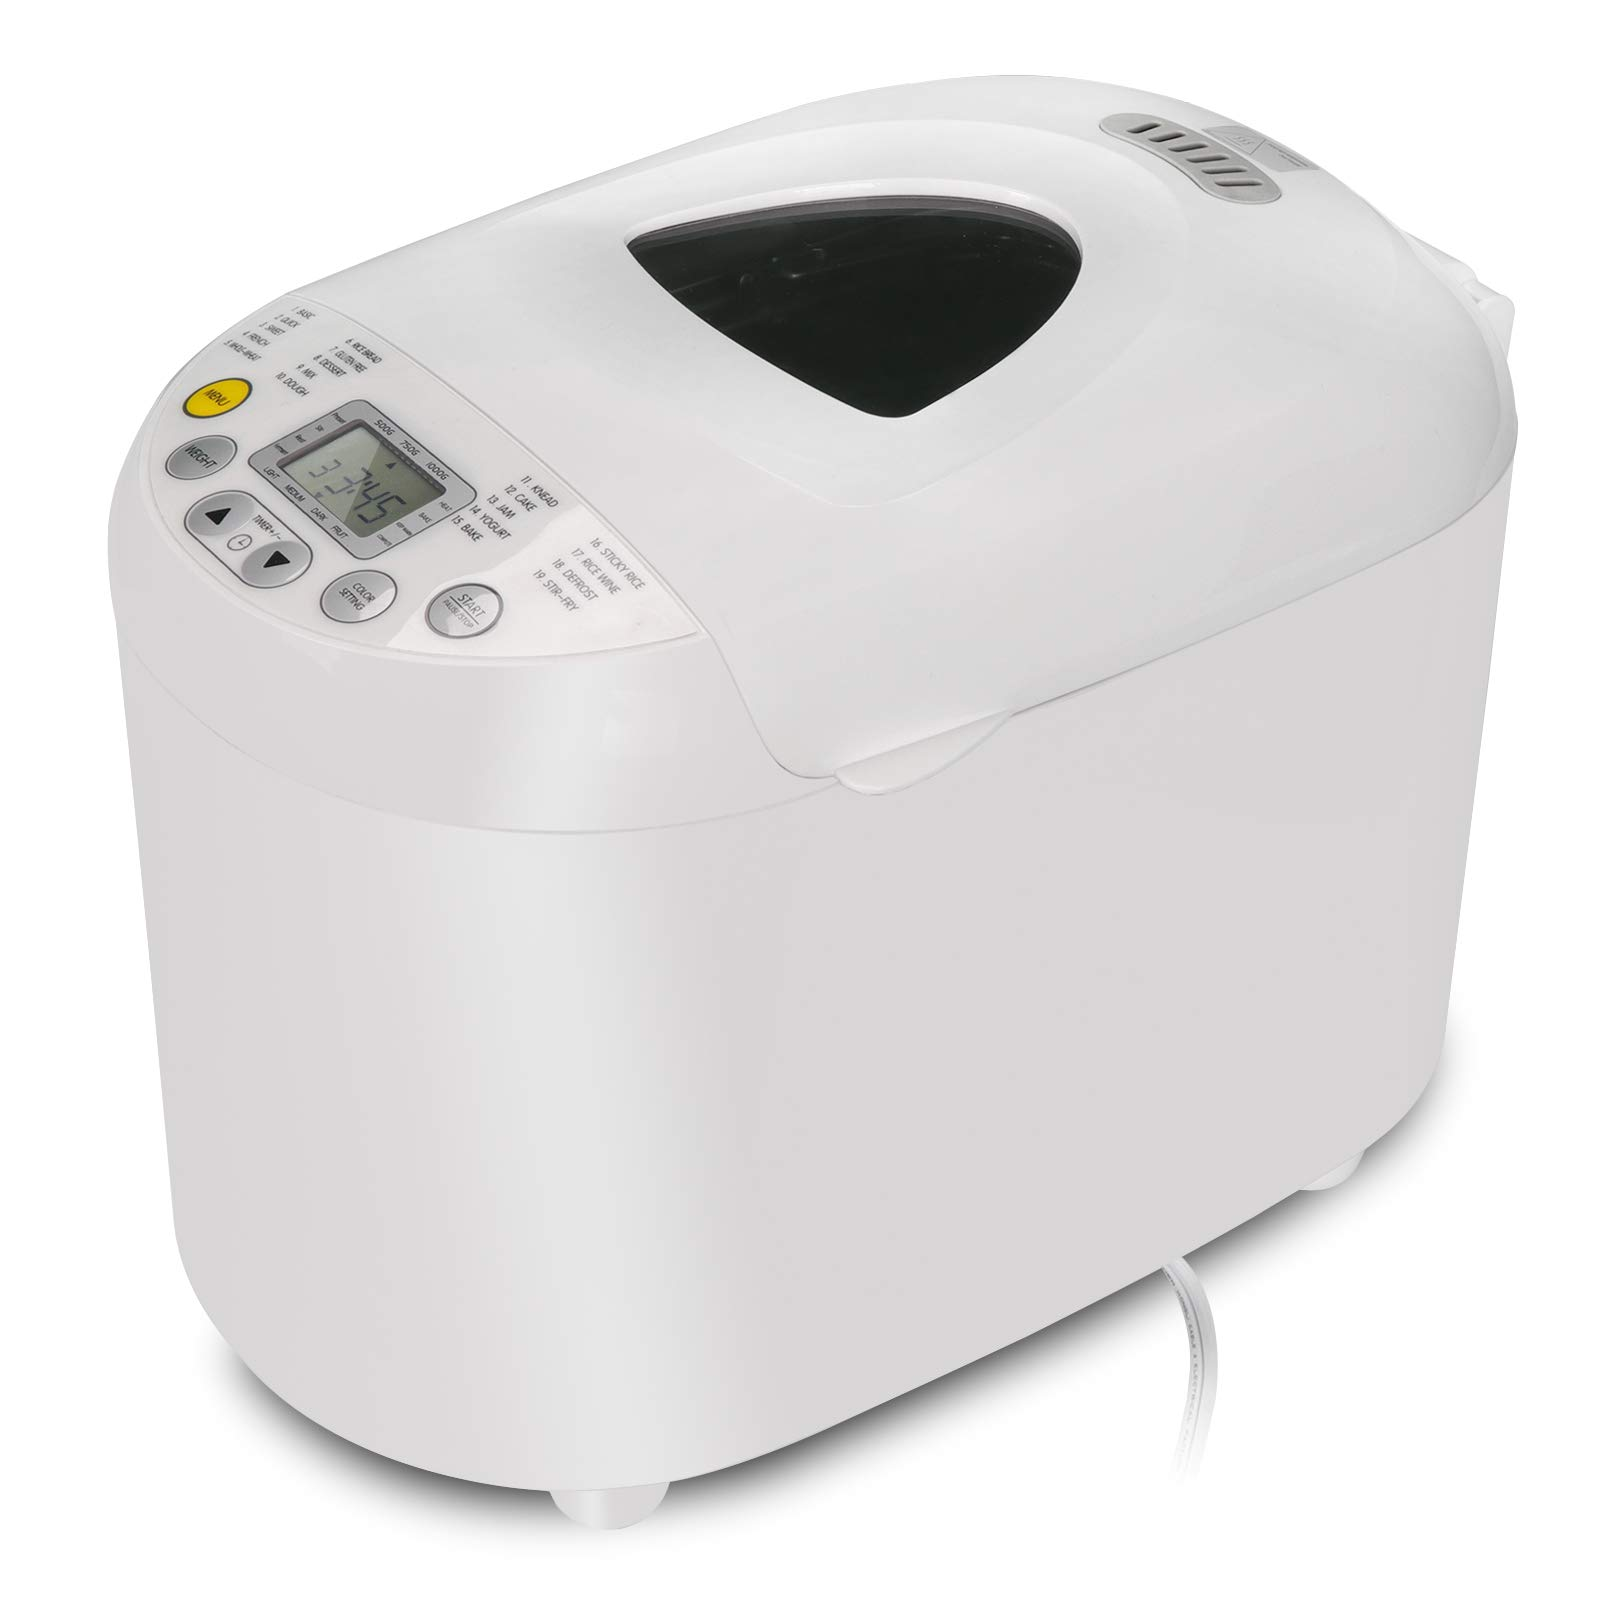 SUPER DEAL Automatic Bread Maker Stainless Steel 19 Programs, 3 Loaf Sizes, 3 Crust Colors, 15 Hours Delay Timer, 1 Hour Keep Warm, Whole Wheat Breadmaker, 550W by SUPER DEAL